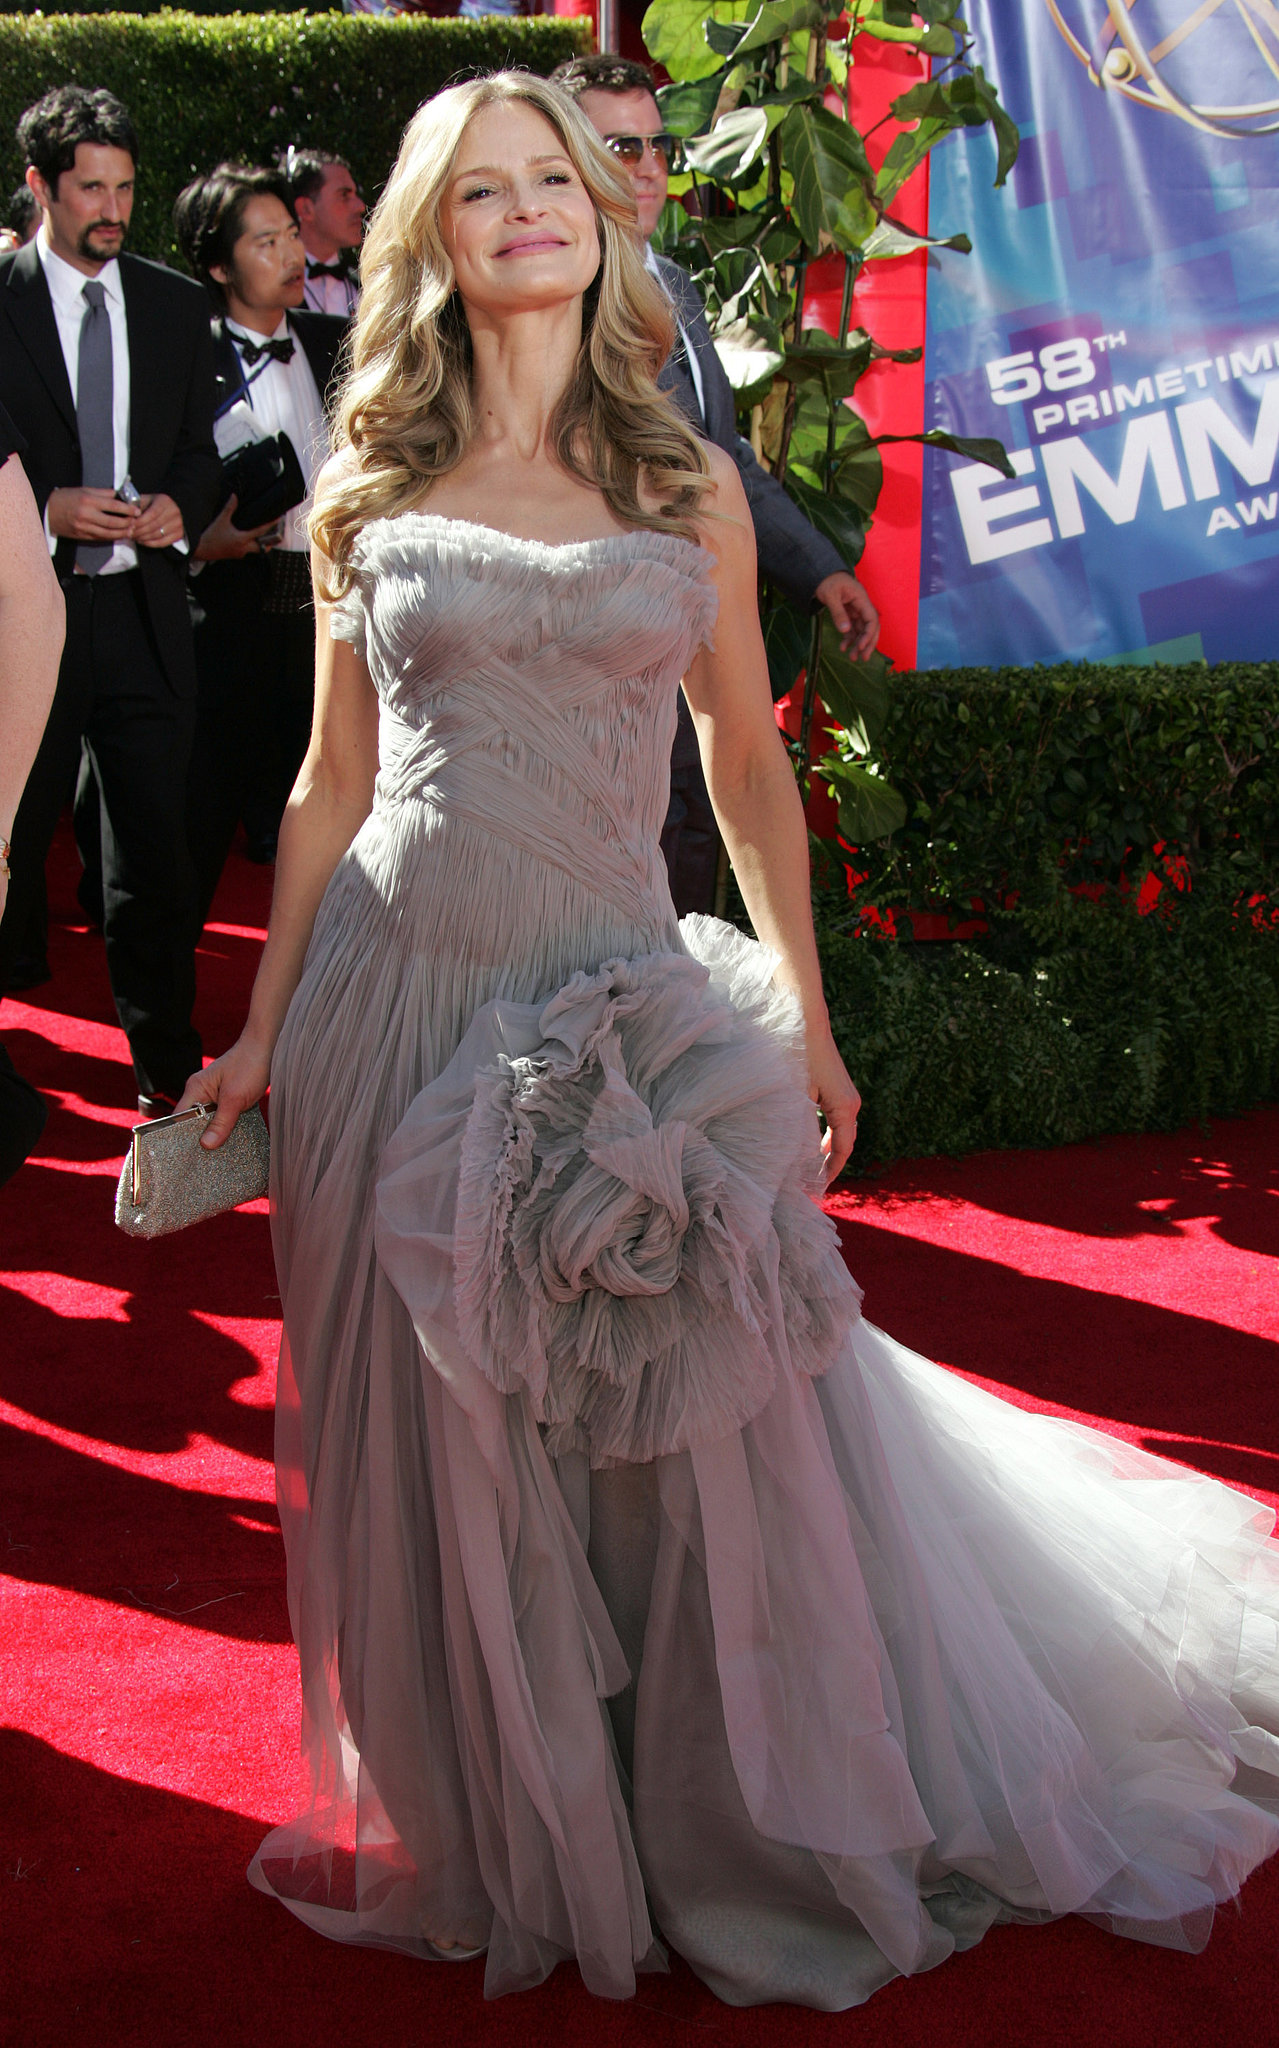 The Closer's Kyra Sedgwick selected an intricate gray gown for her walk down the red carpet in 2006.